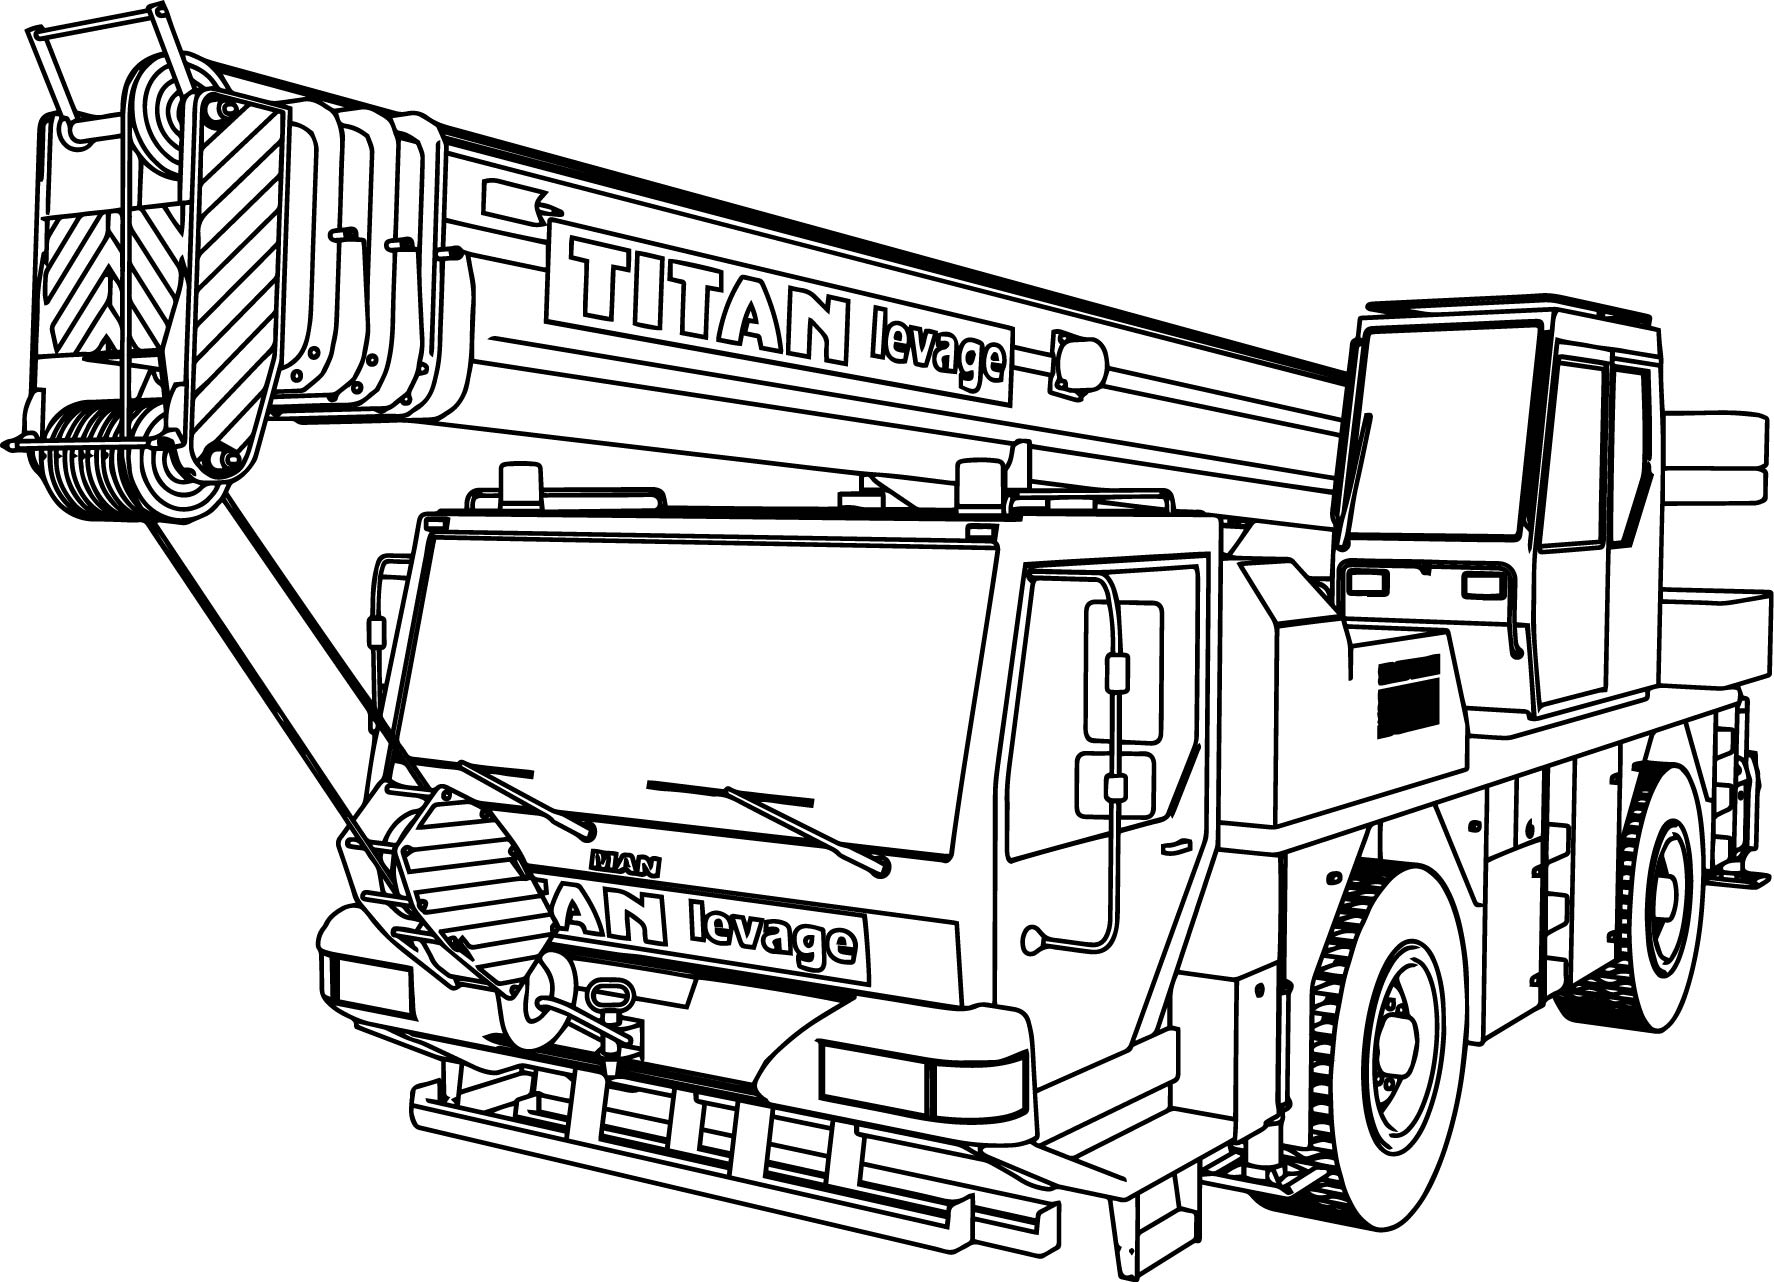 Man titan levage ltm 1160 pull truck coloring page for Trucks coloring pages